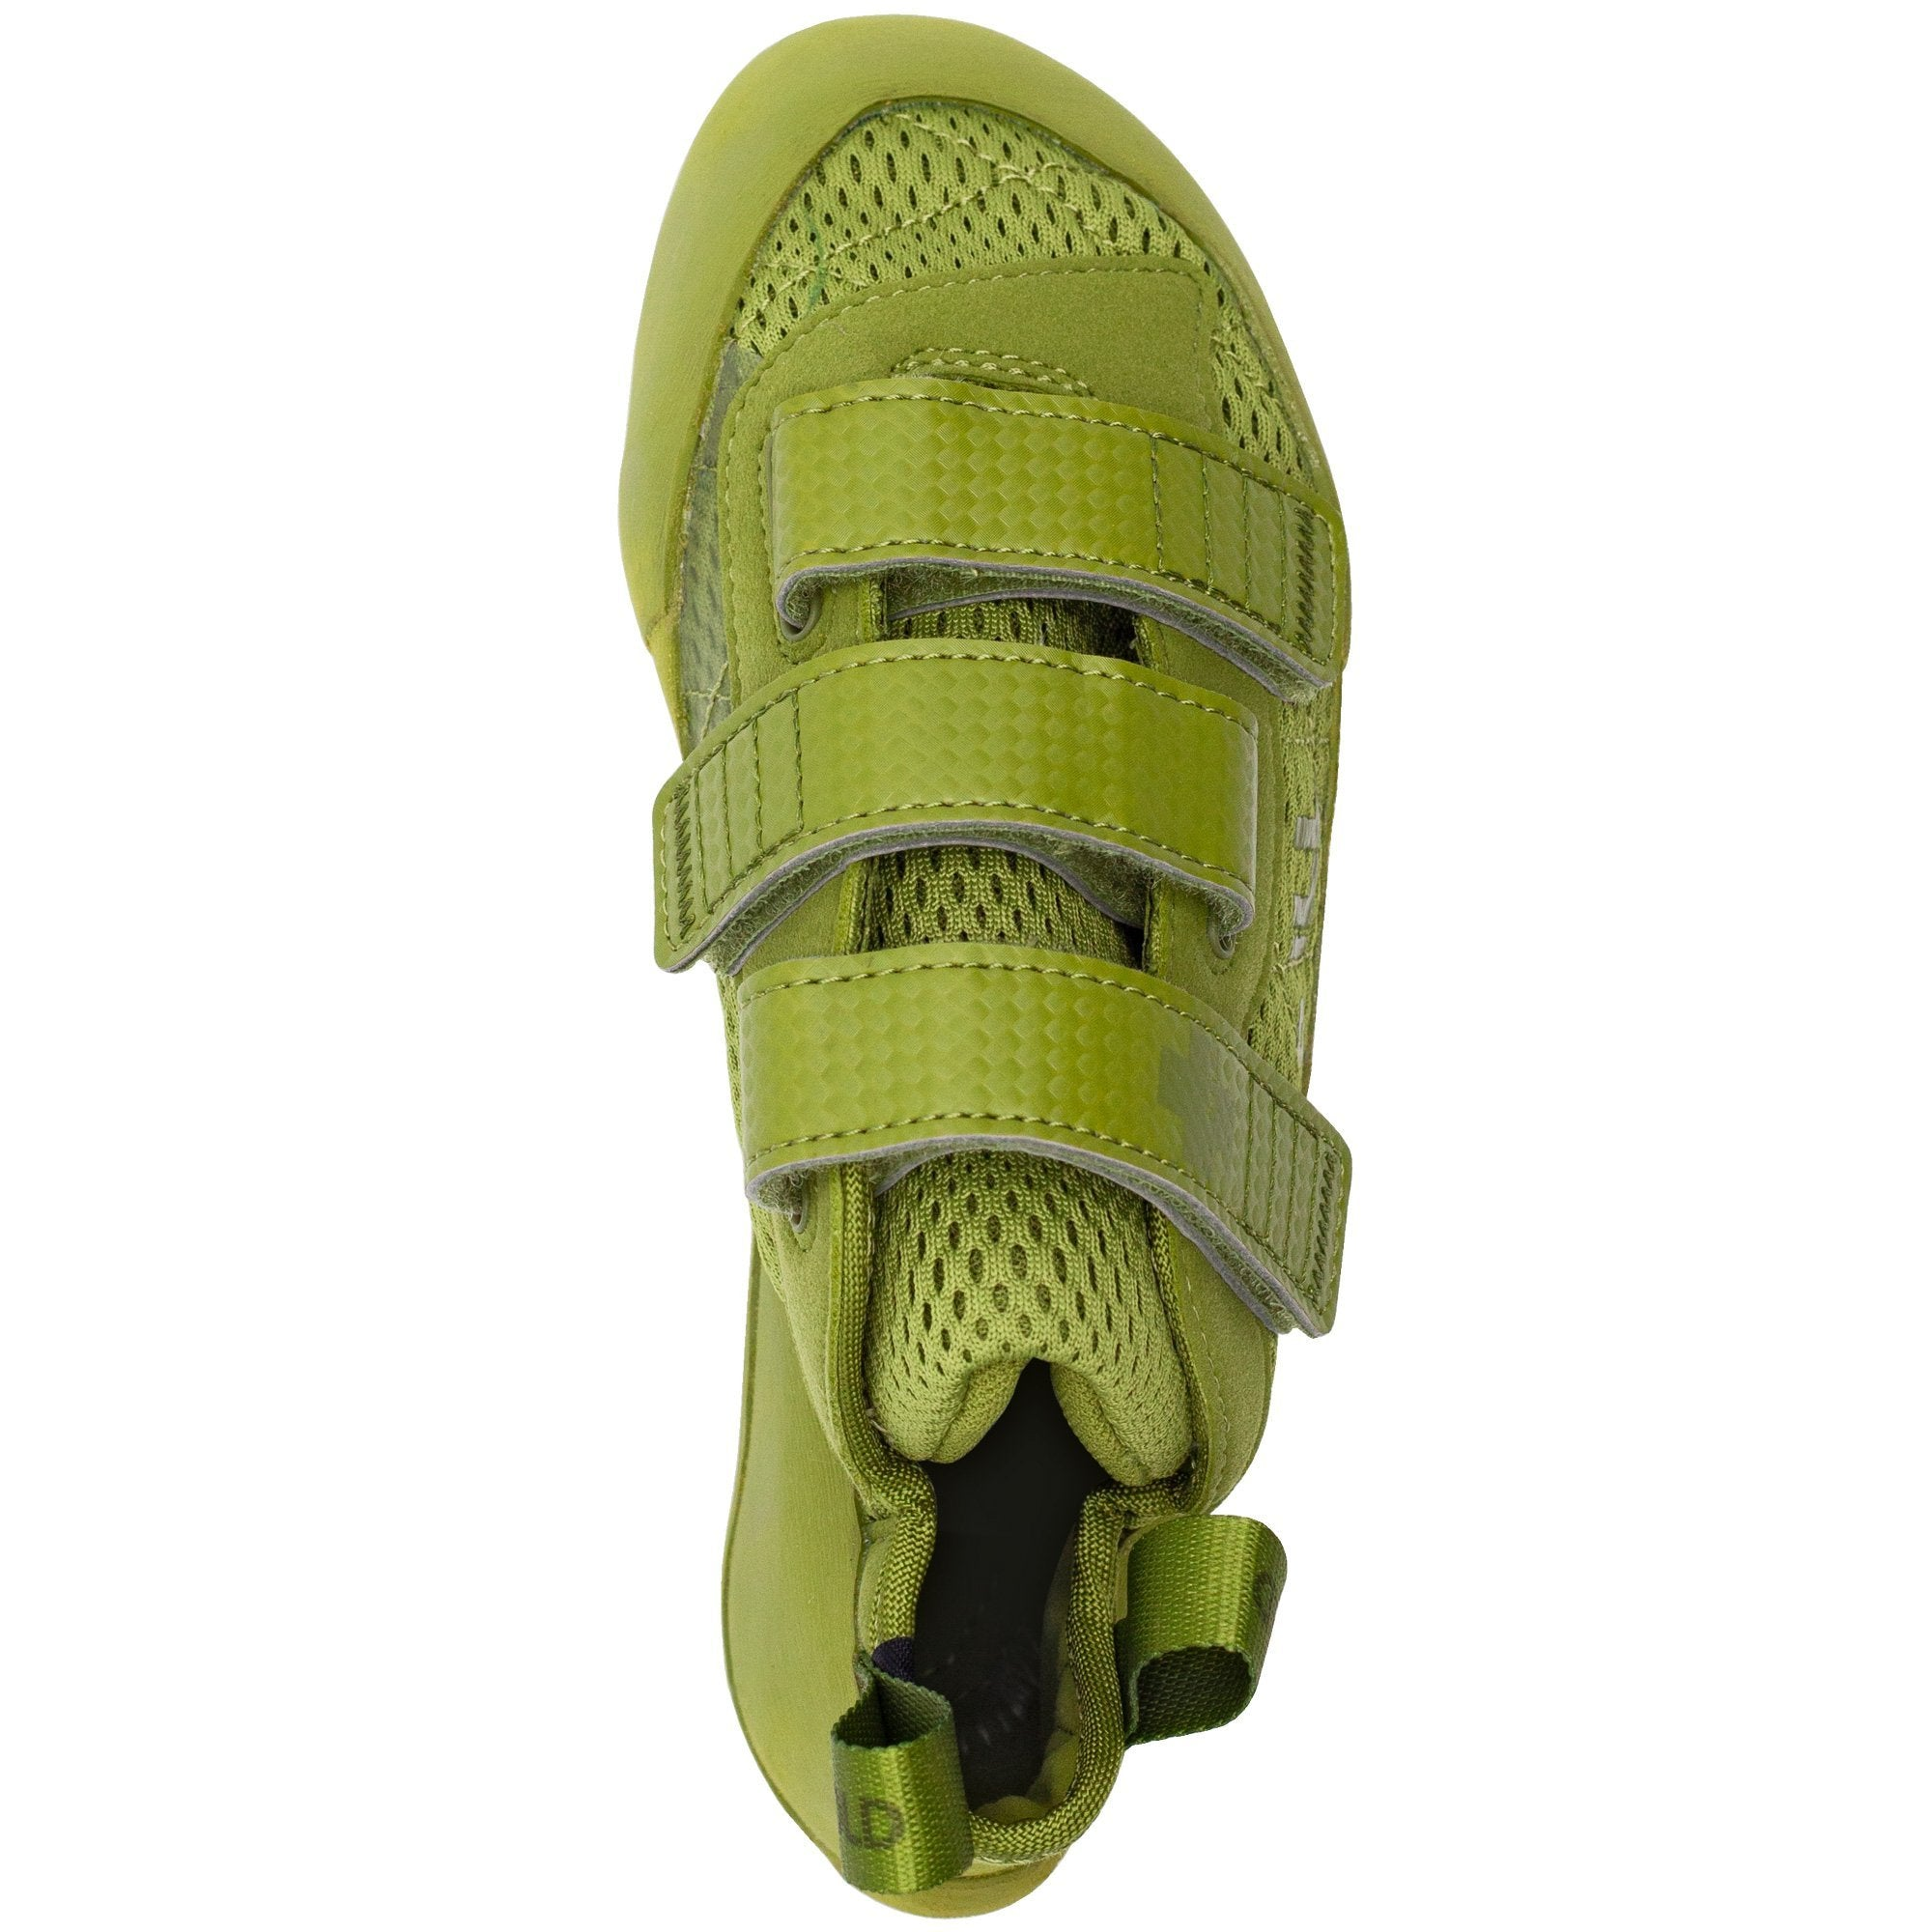 So iLL Runner LV Low Volume Women's Rock Climbing Shoe in Olive – Top View